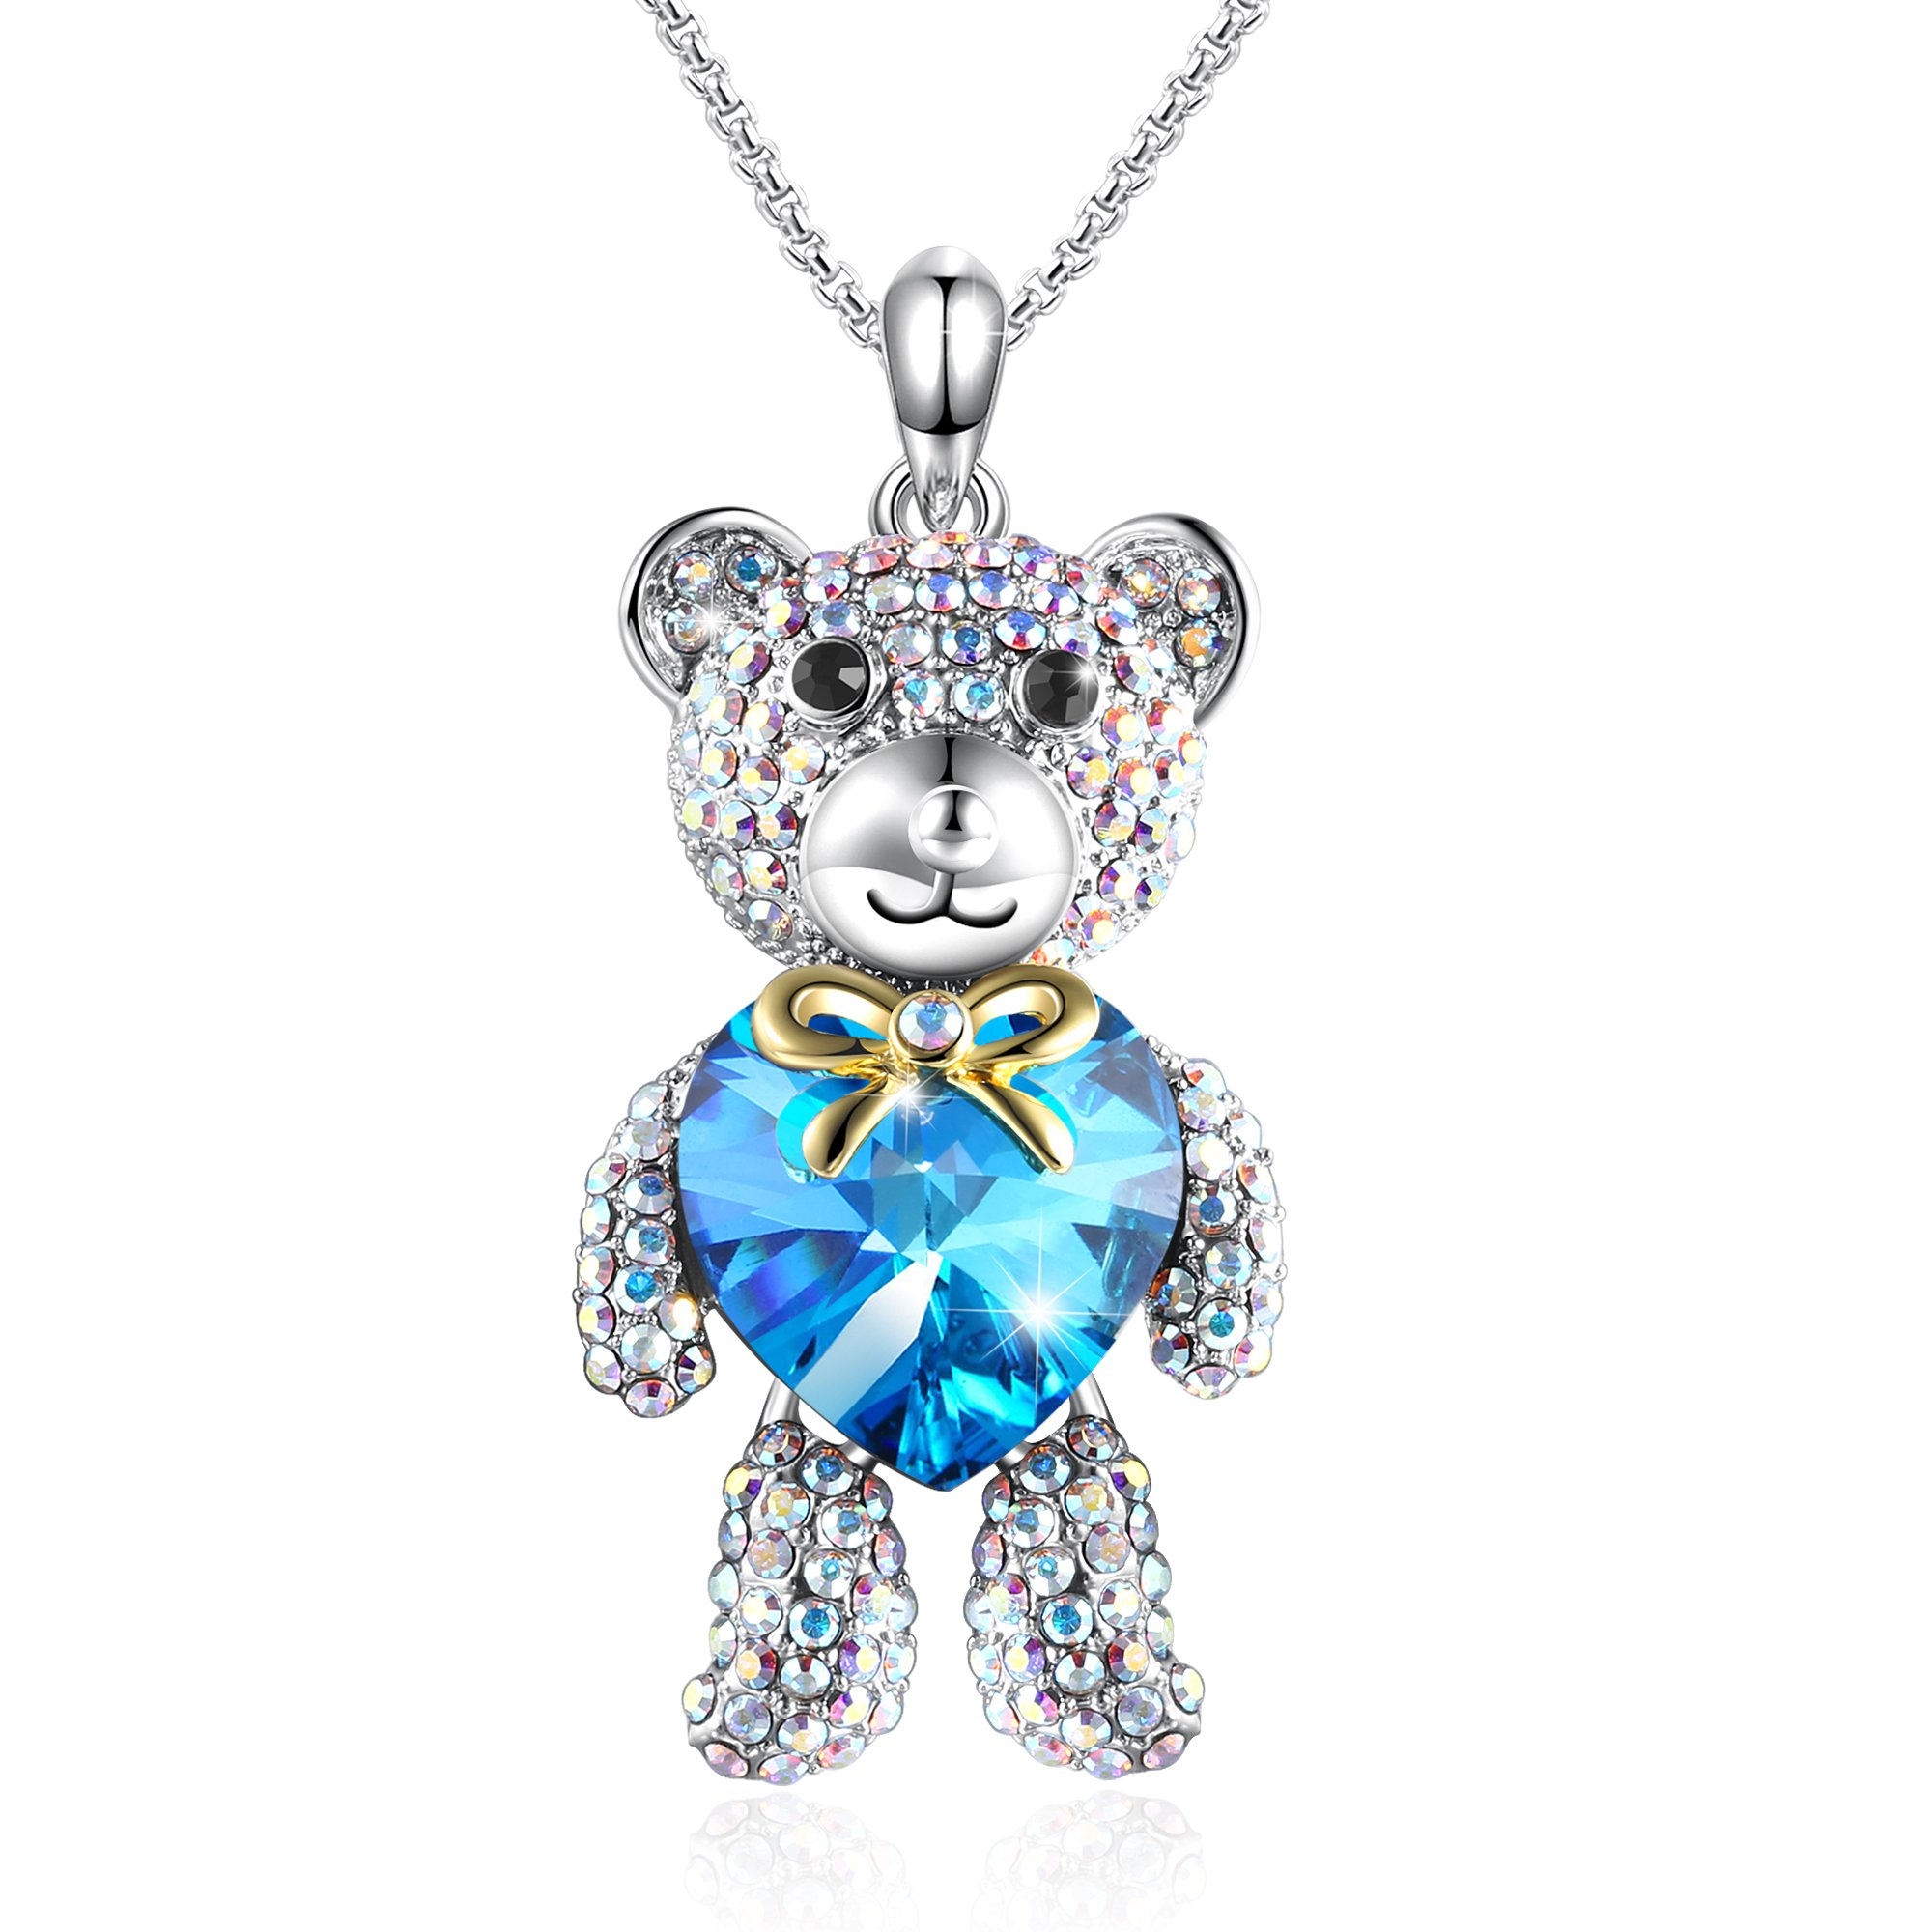 gallery necklace kc designs lyst pendant teddy product metallic in yellow diamond bear gold jewelry